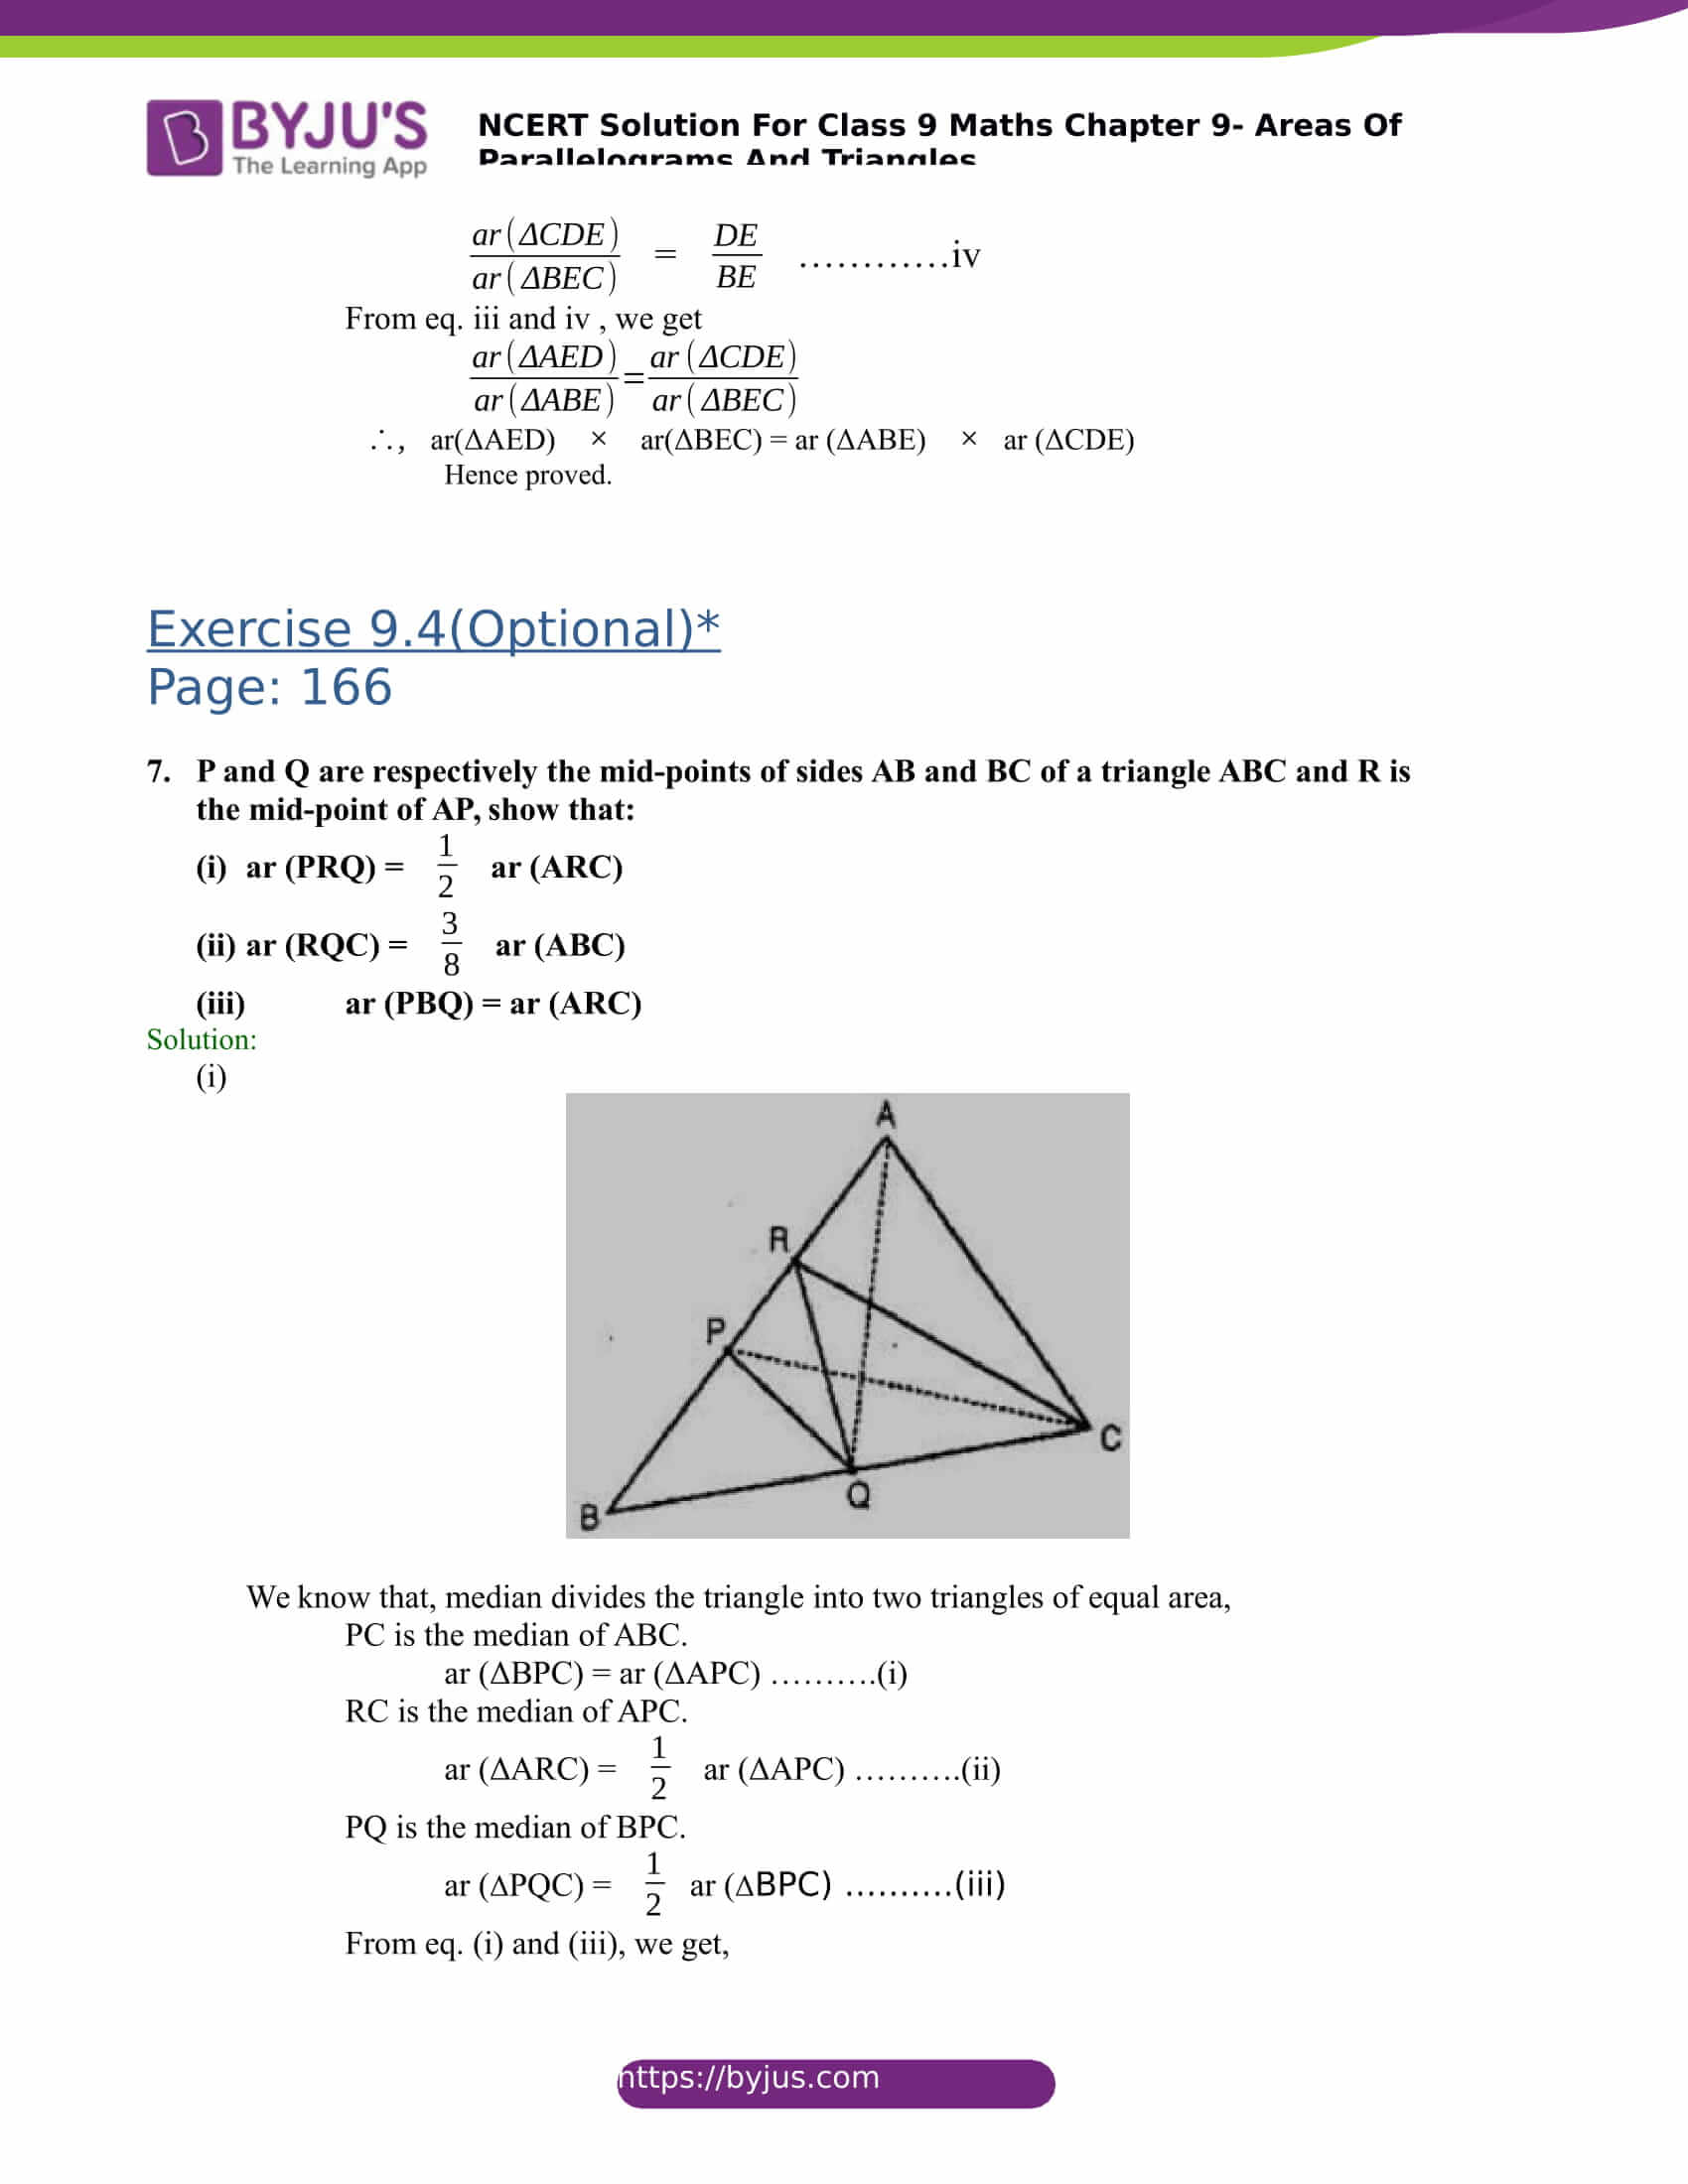 NCERT Solutions for class 9 Maths Chapter 9 Areas of parallelograms and triangles Part 27